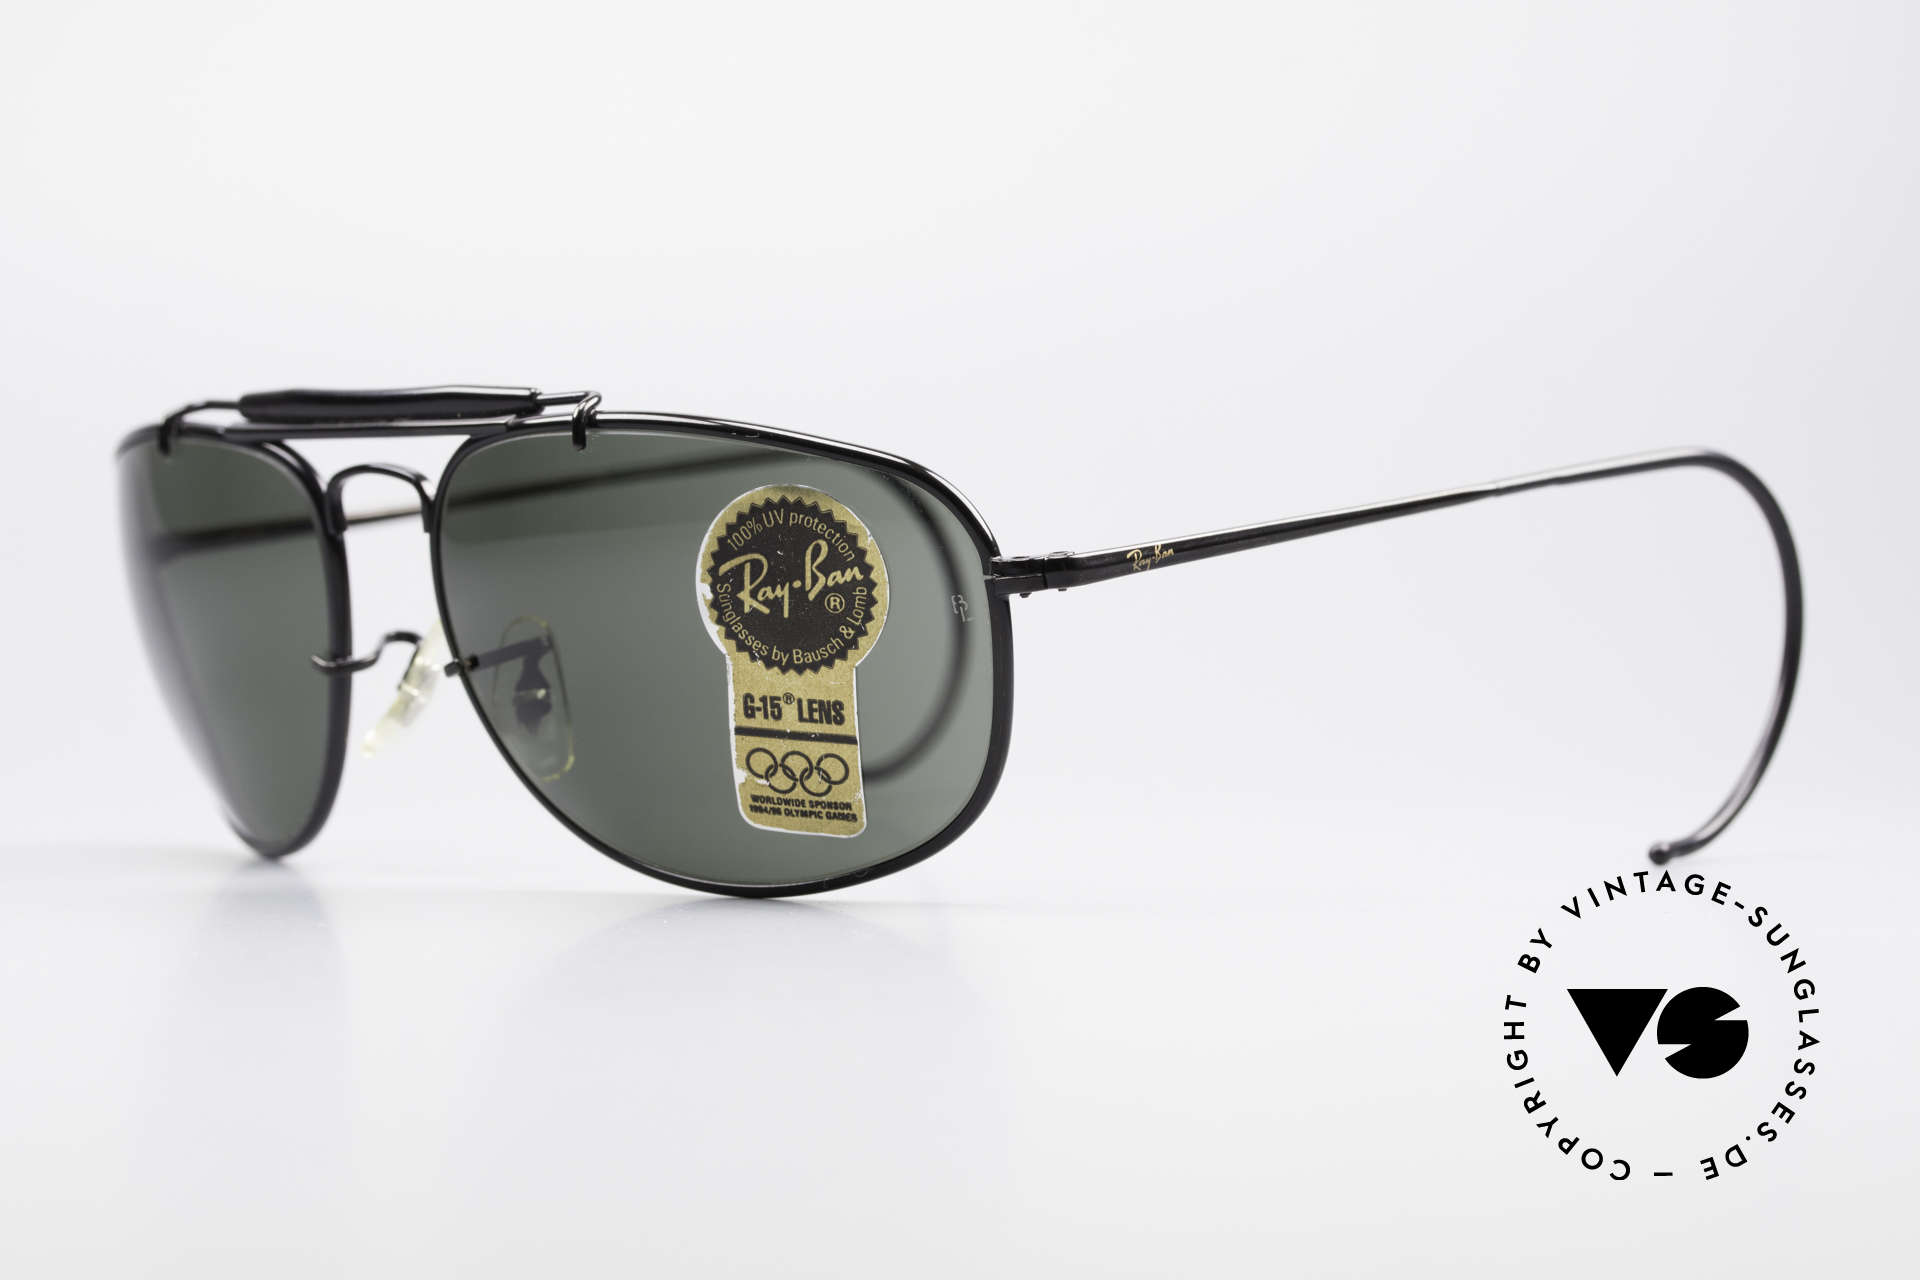 Ray Ban Sport Metal 1992 Olympic Series B&L USA, perfect fit due to flexible sport temples and TOP quality, Made for Men